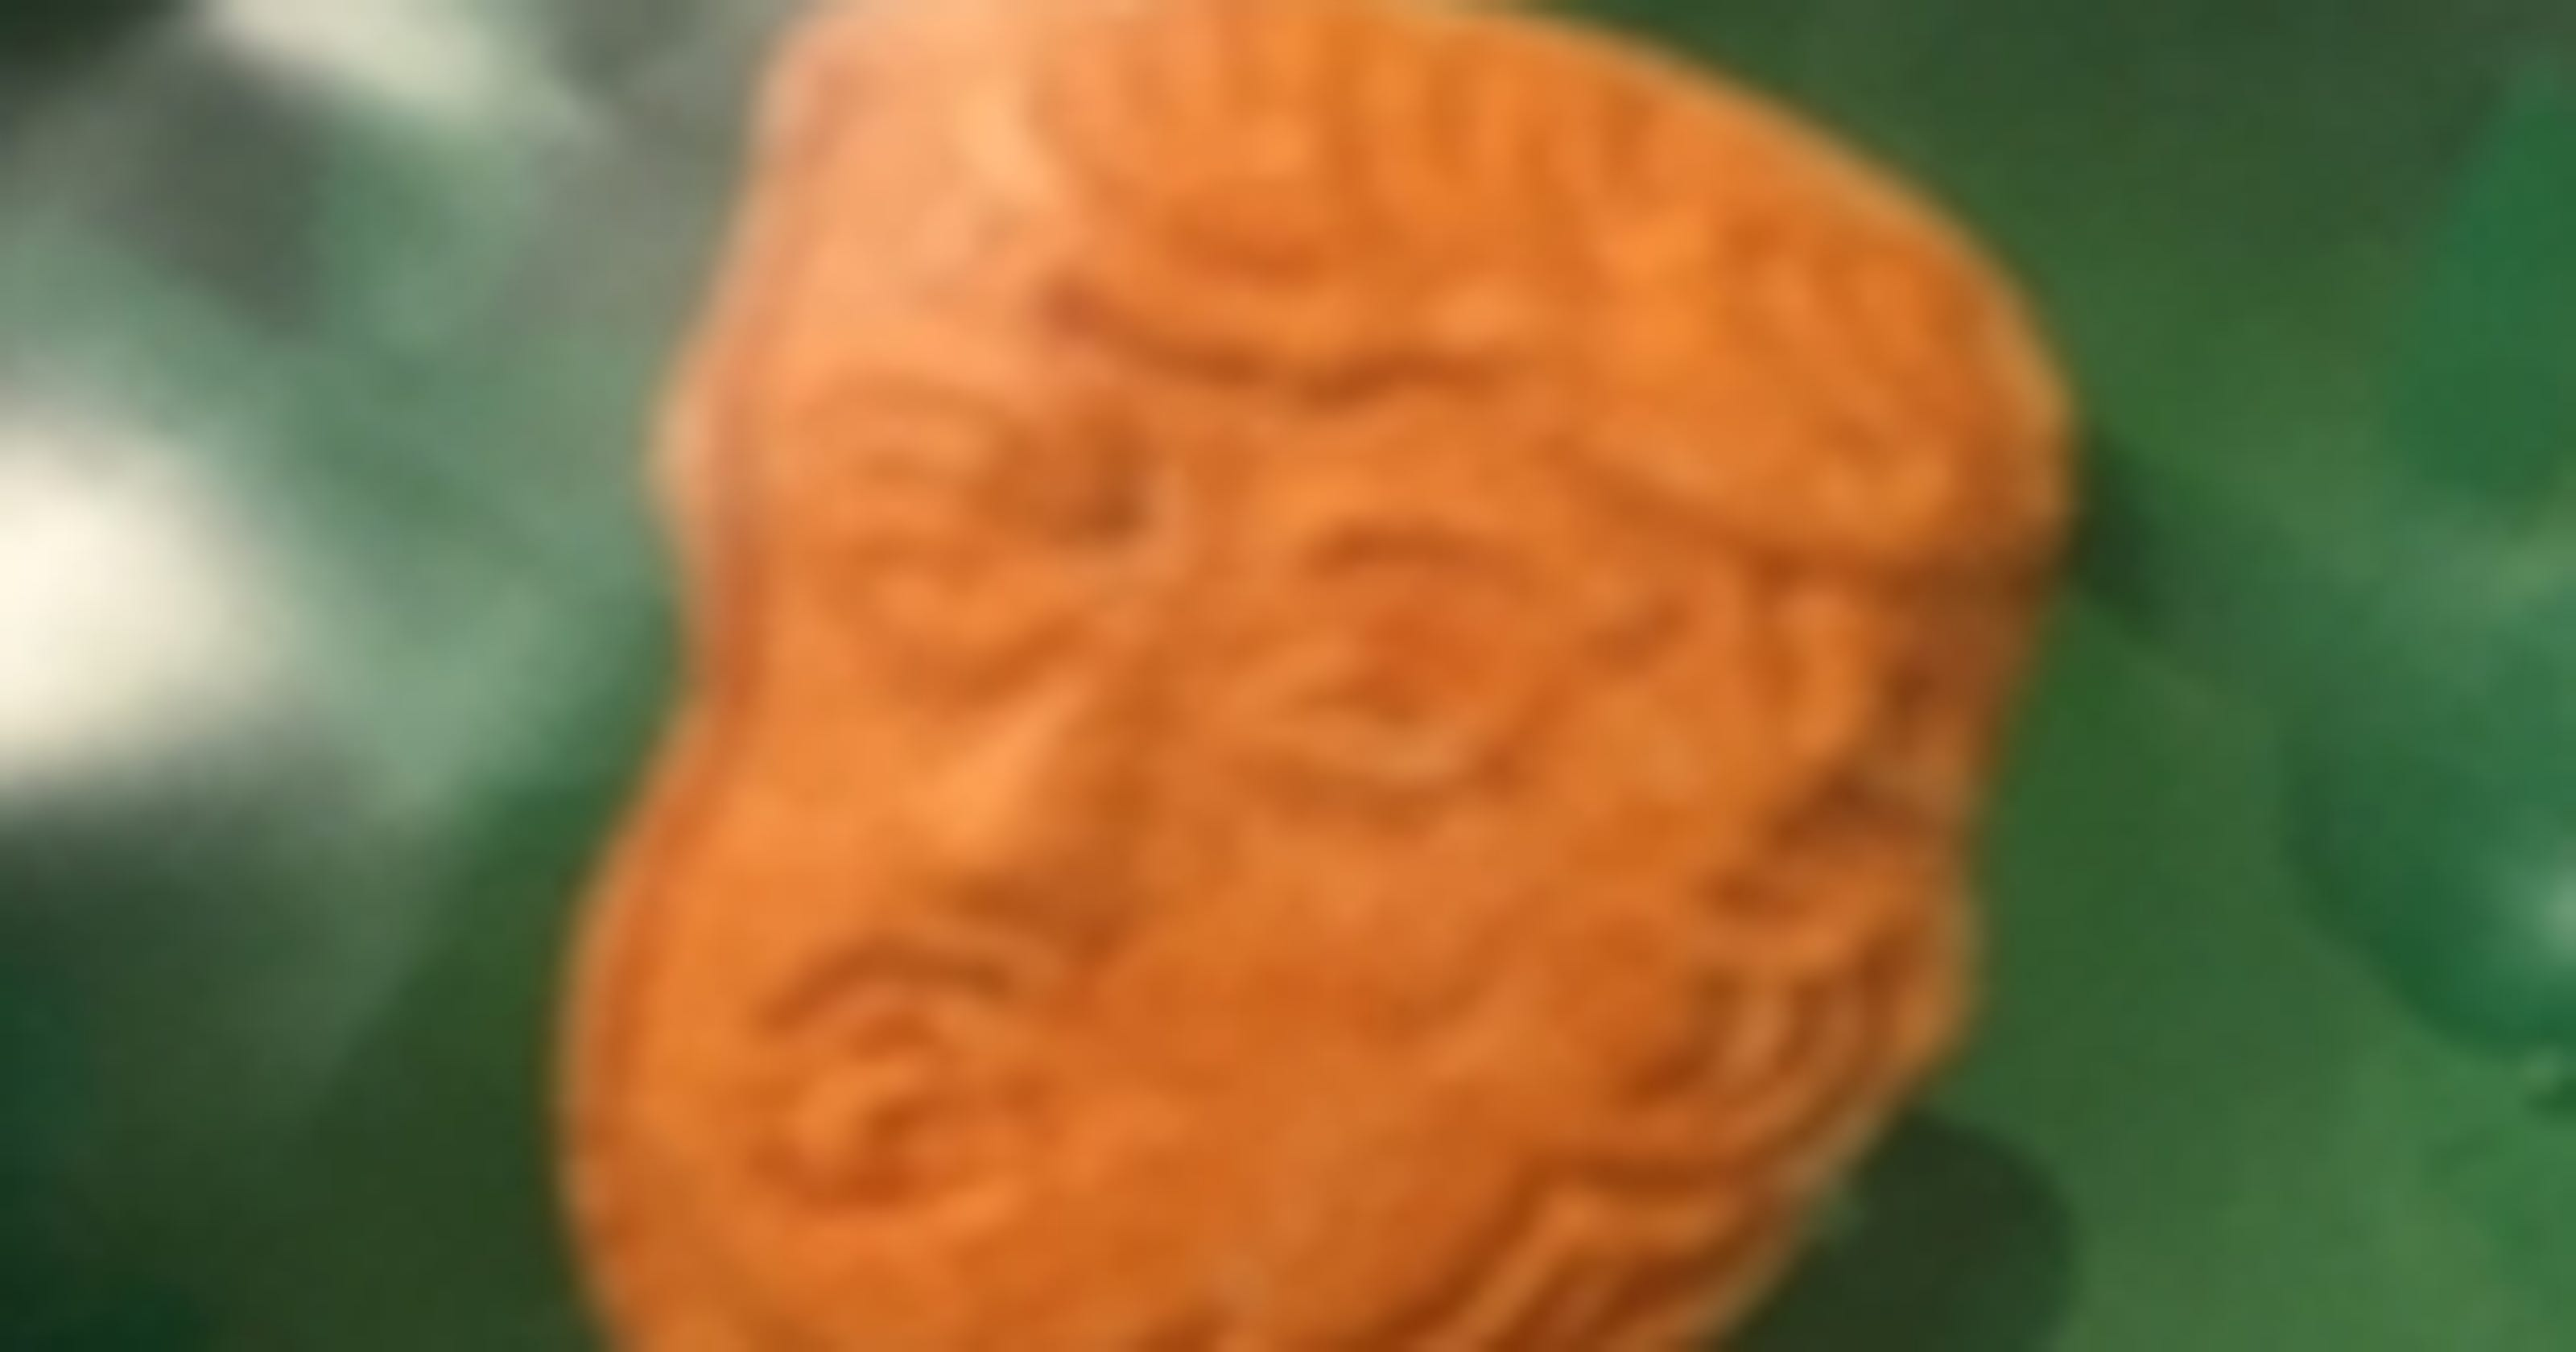 Indiana State Police find Trump-shaped Ecstasy tablets